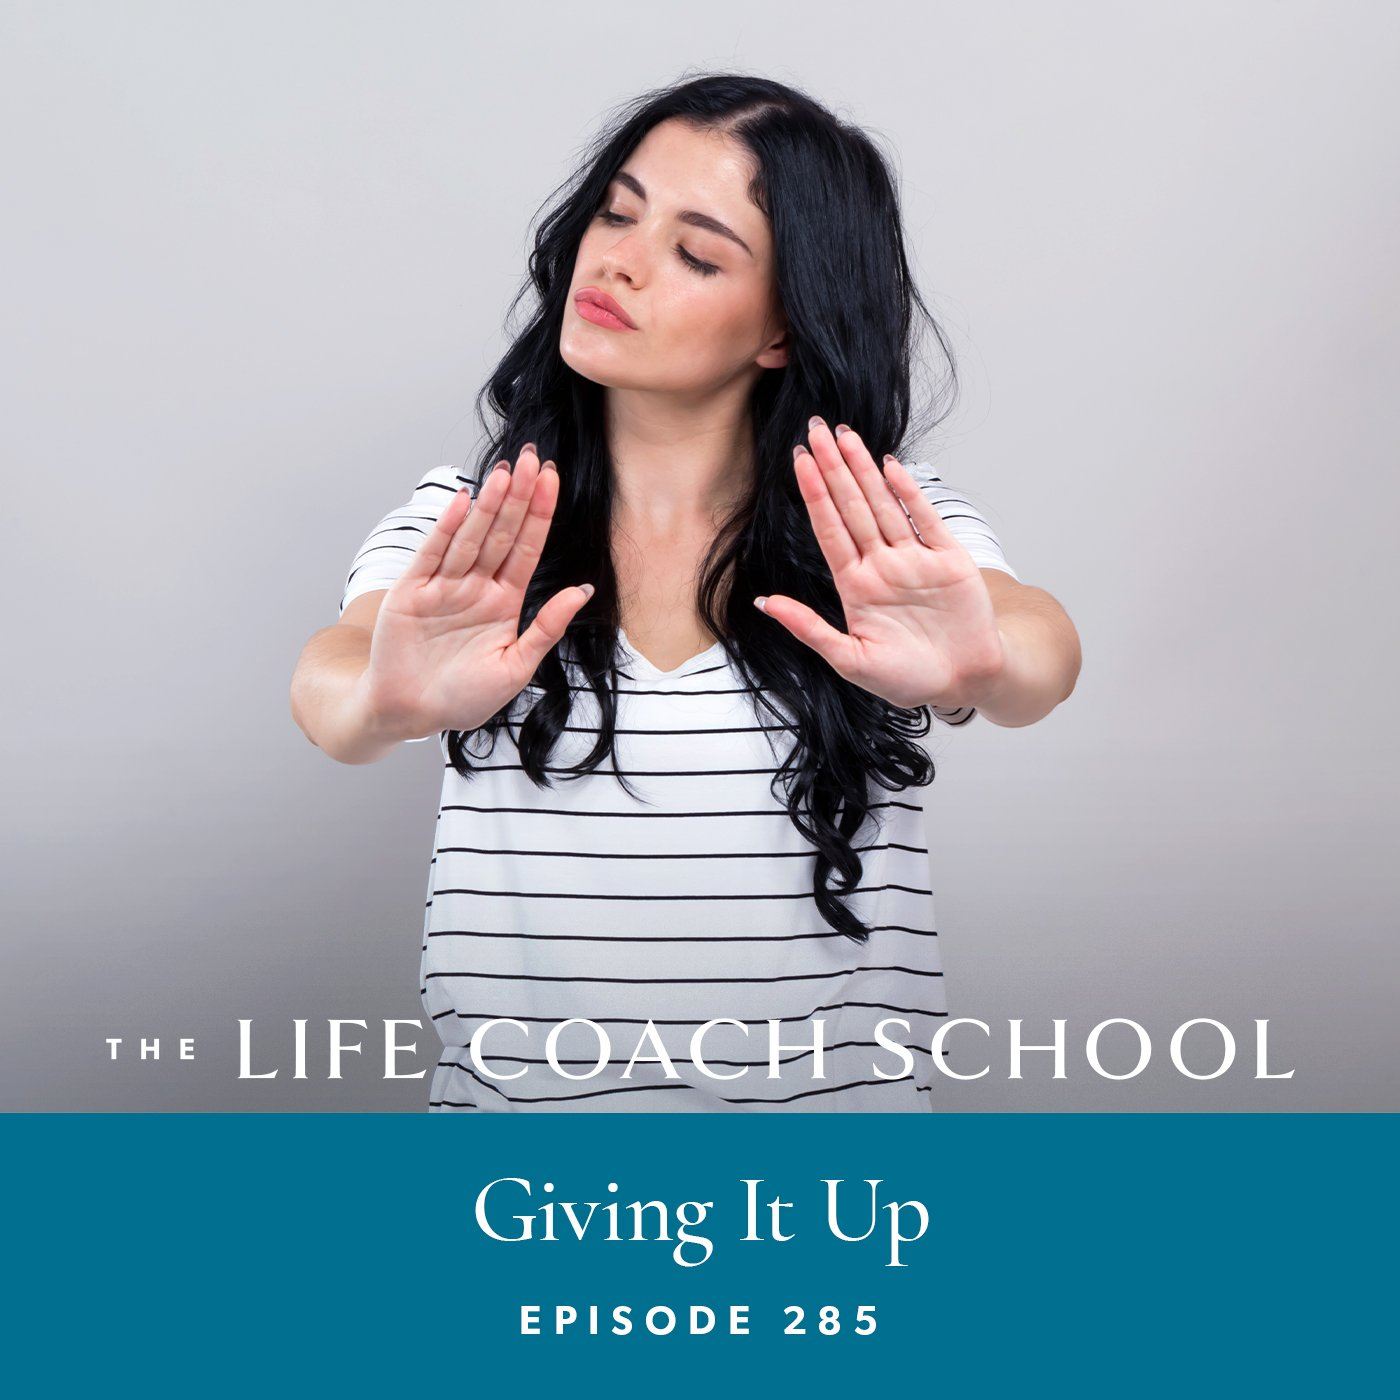 The Life Coach School Podcast with Brooke Castillo | Episode 285 | Giving It Up